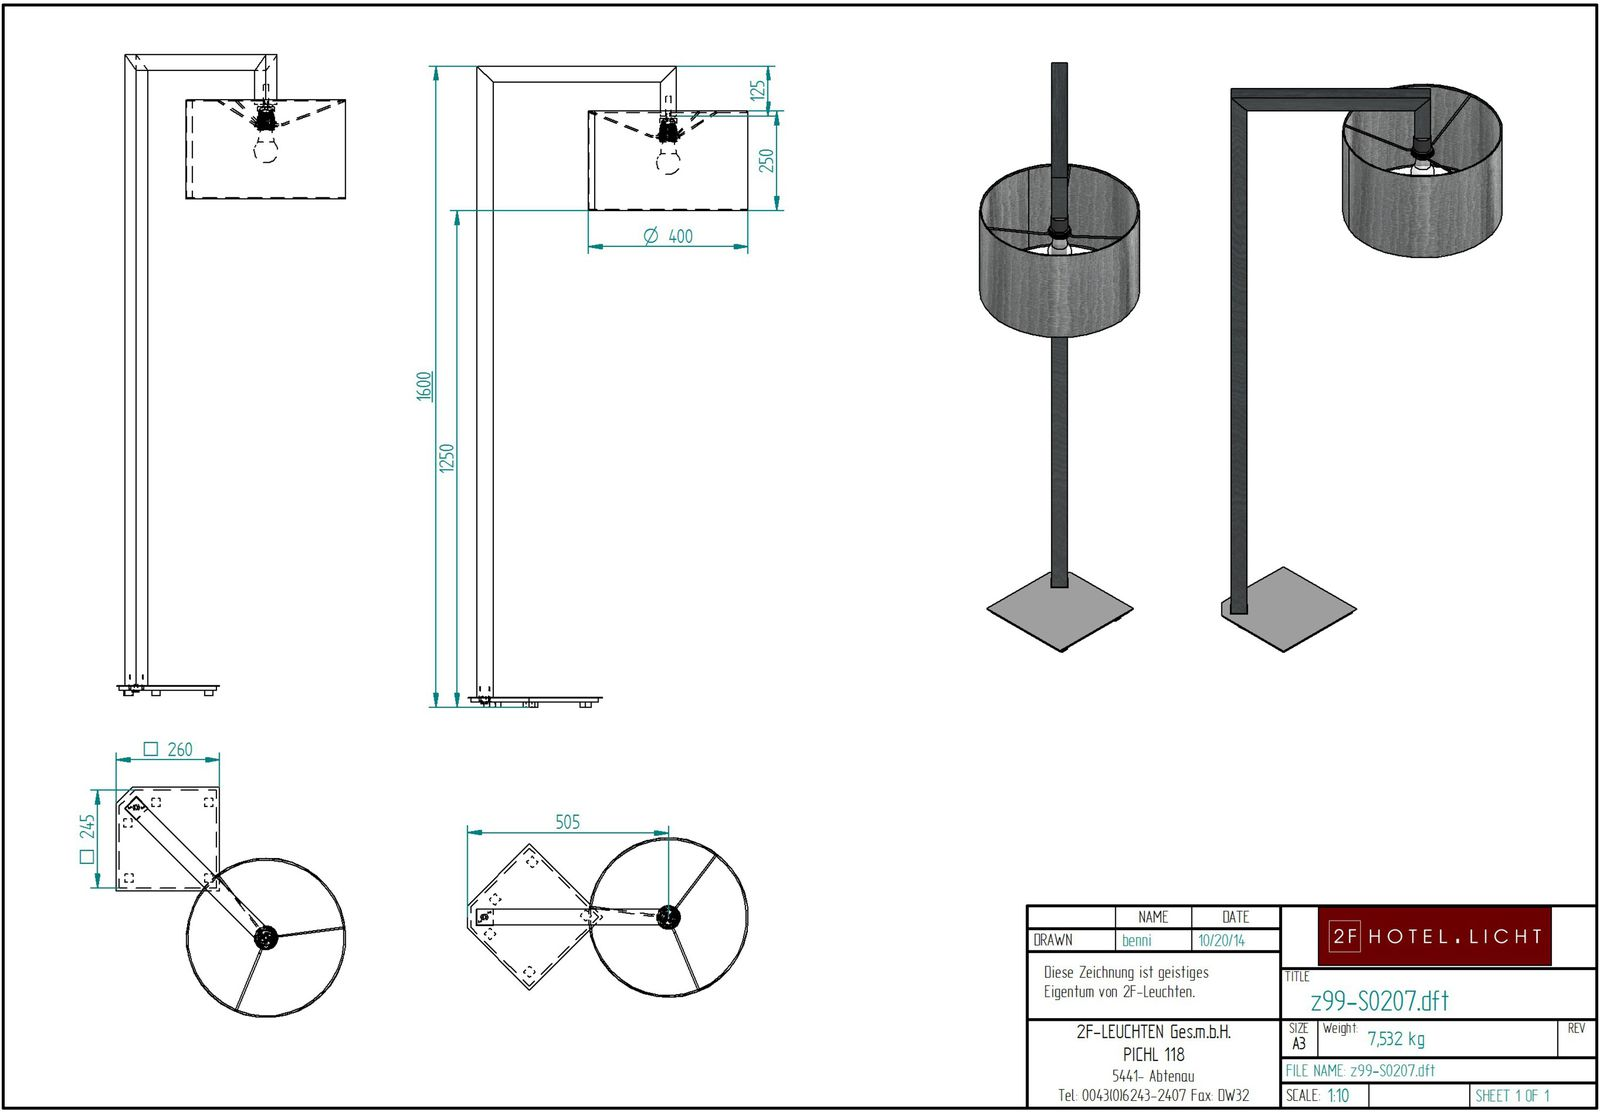 Floor lamp, lenght=600mm, wide=400mm, Height=1600mm, surface: metall - Alu, techn. Data: 1xE27, LED, 8,5W